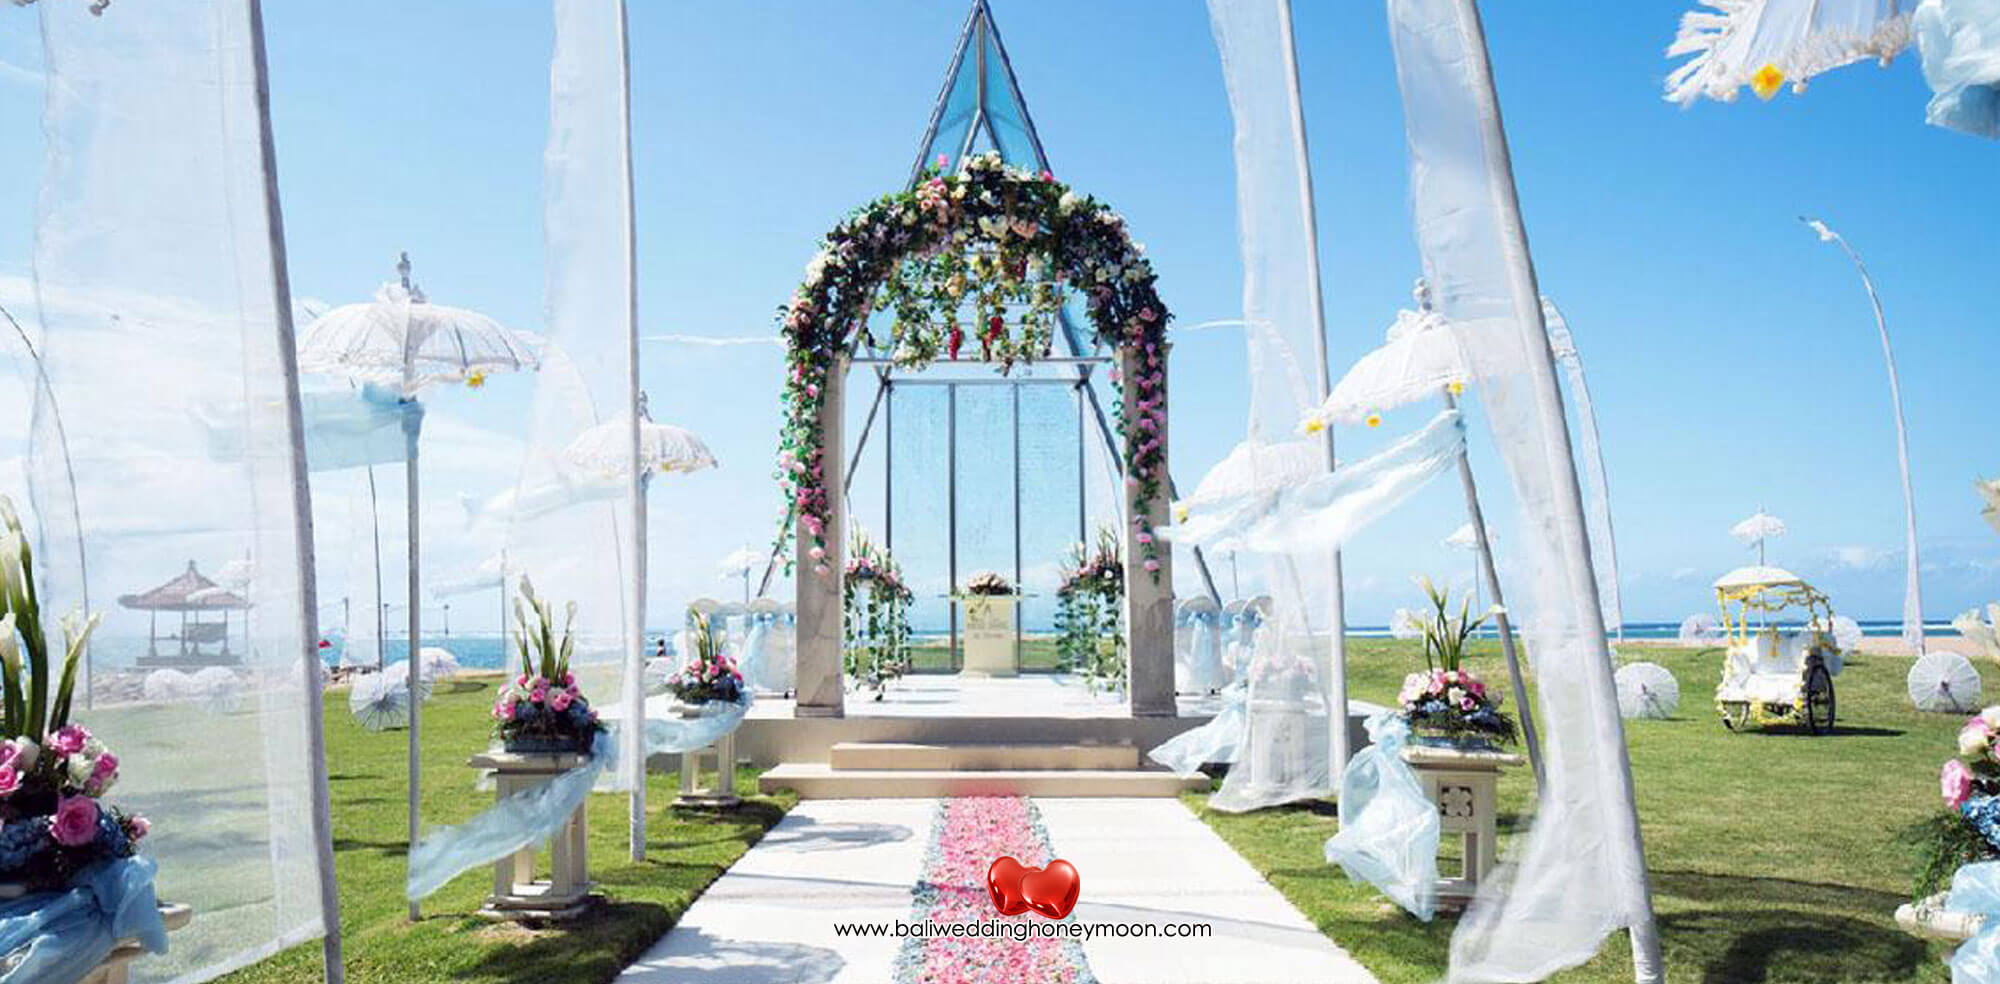 balichapelwedding-baliweddinghoneymoon-grandmiragechapelweddingbali (3)